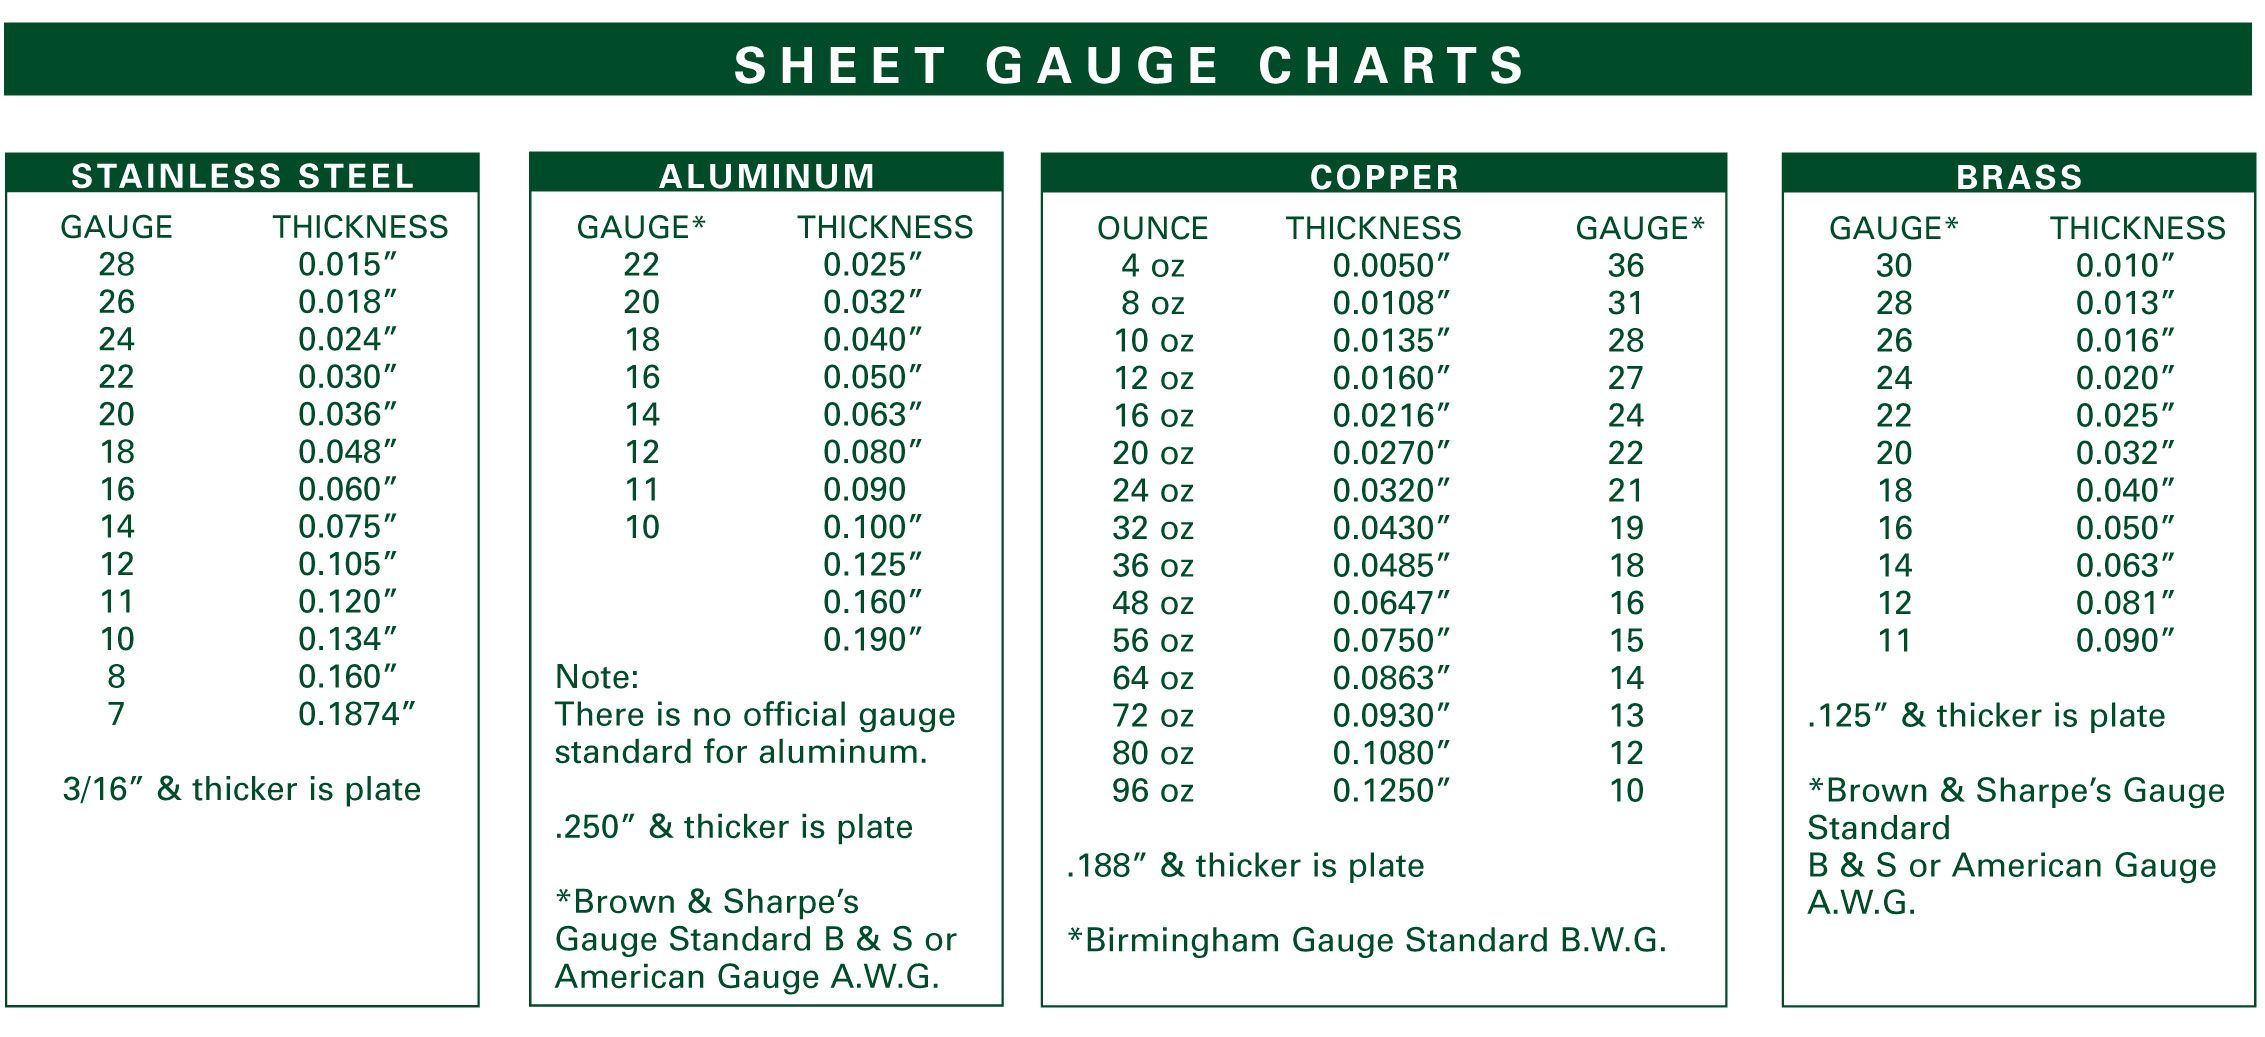 Sheet Gauge Chart 4 Jpg 2265 1037 Metal Gauge Sheet Metal Shop Steel Sheet Metal